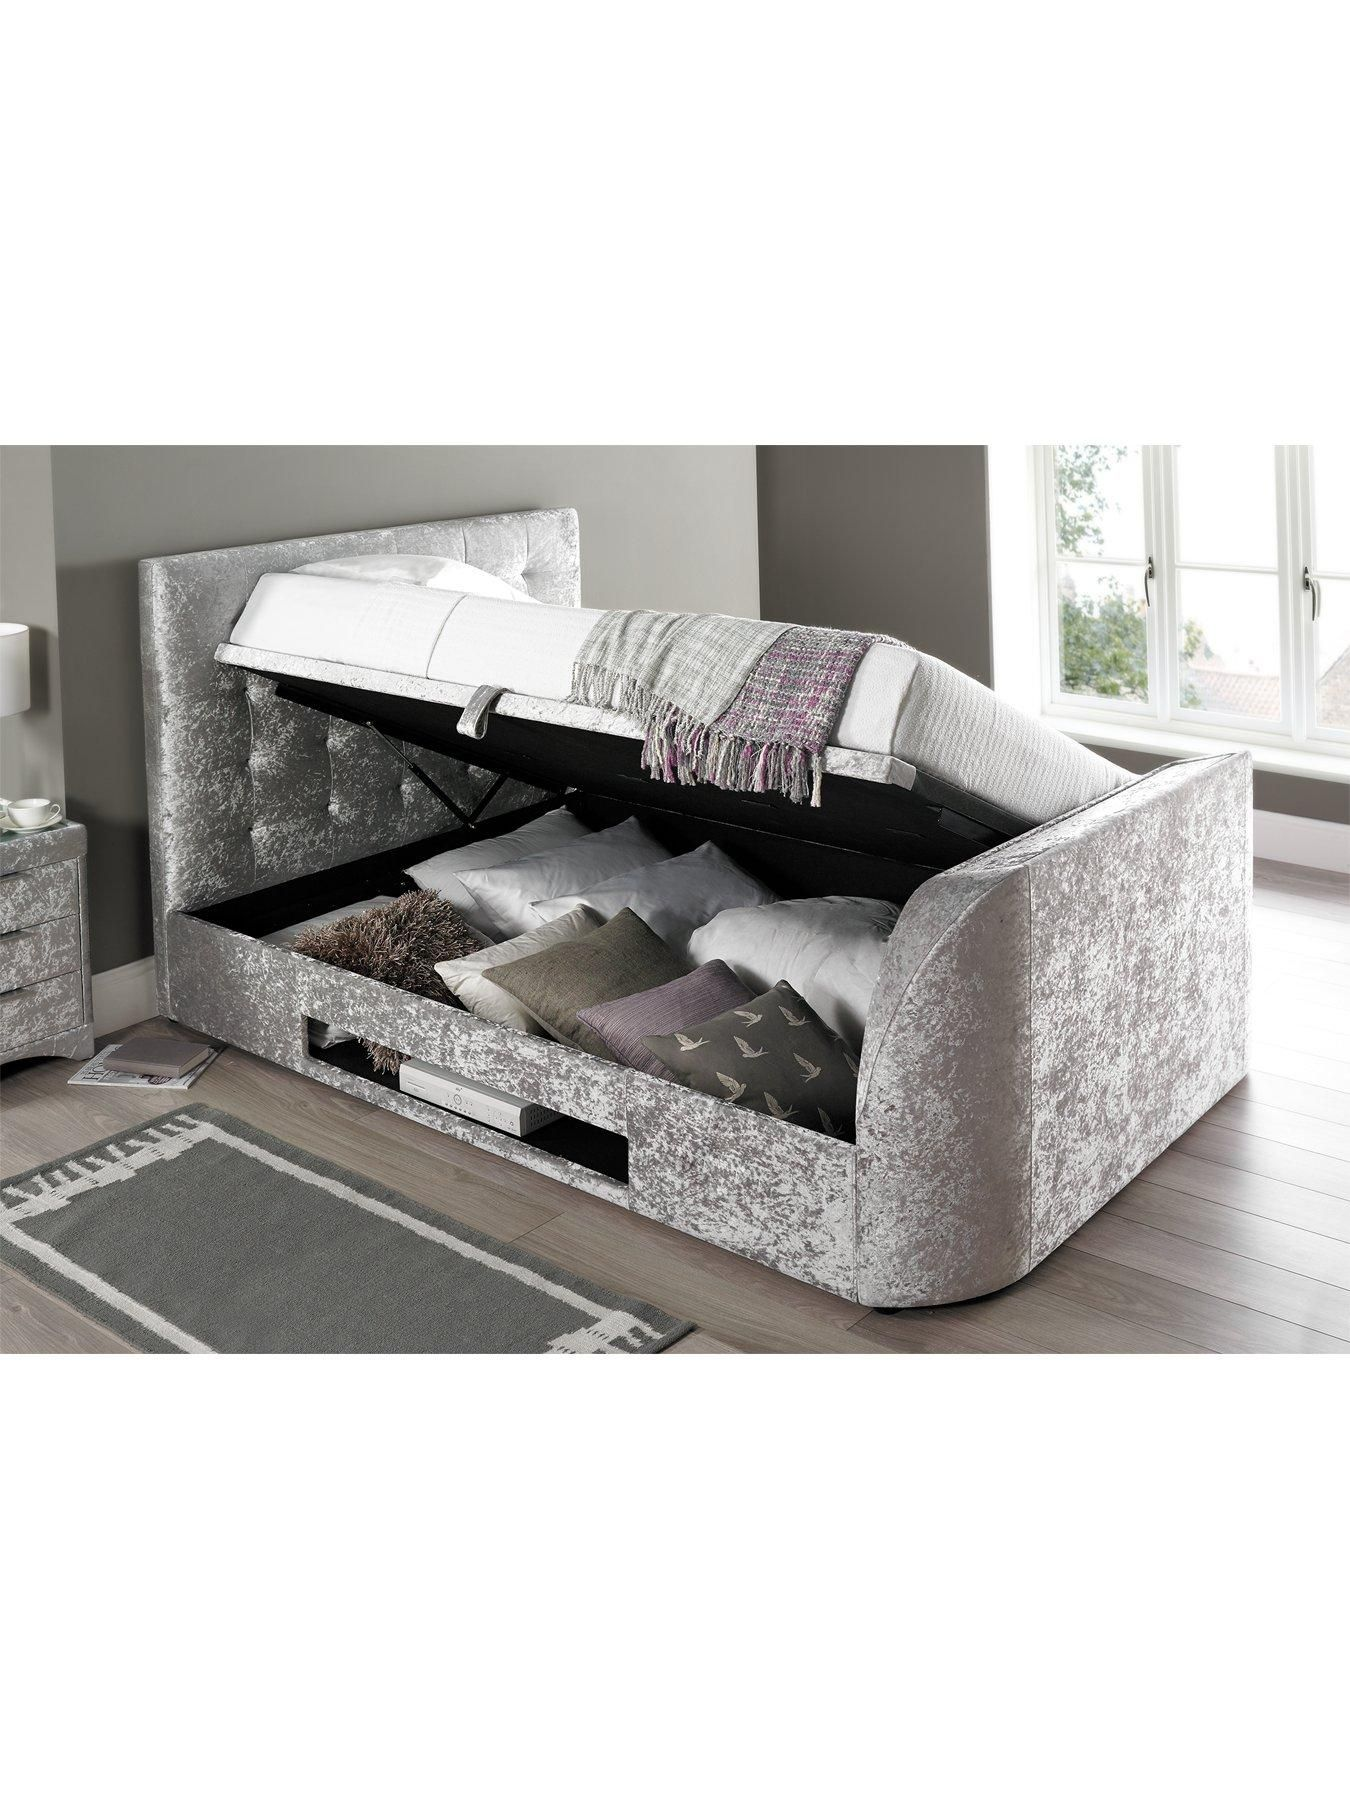 Scarpa Fabric Lift Up Storage Tv Bed Frame With Optional Mattress And Next Day Delivery Save